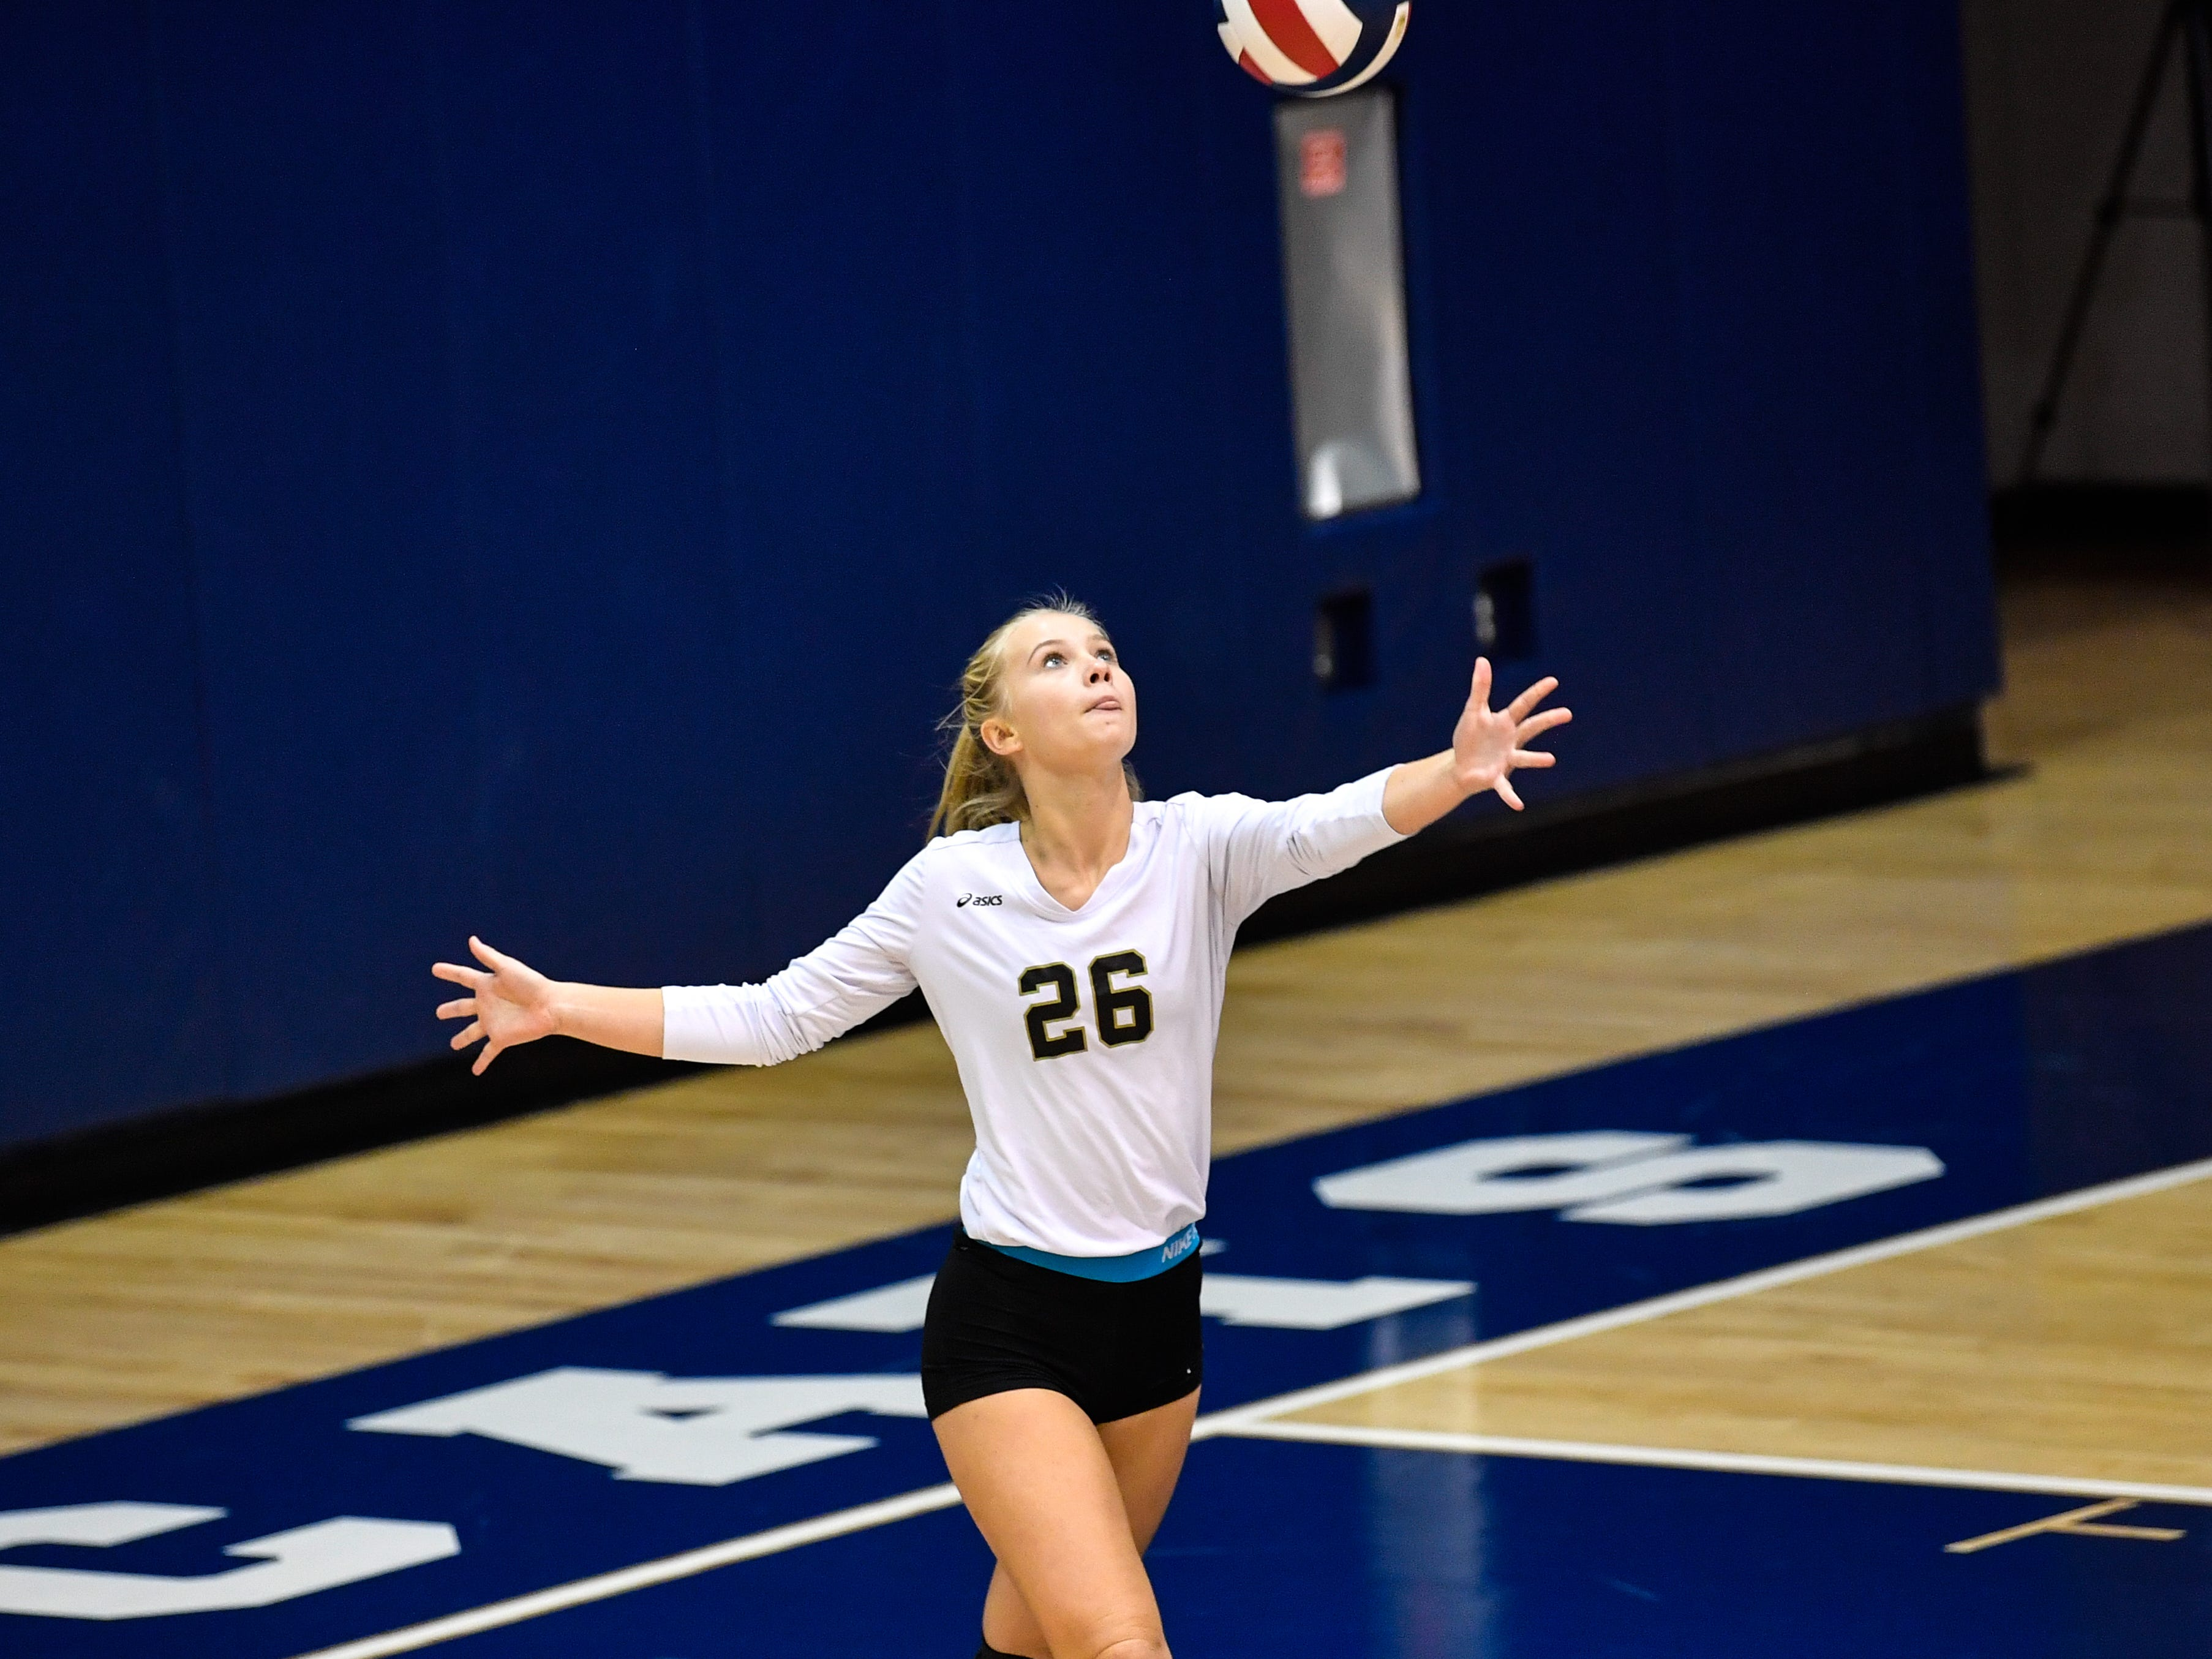 Abby Smith (26) begins her serve during the YAIAA league volleyball tournament semifinals between Eastern York and Delone Catholic, Tuesday, October 23, 2018. The Squirettes defeated the Golden Knights 3-2.